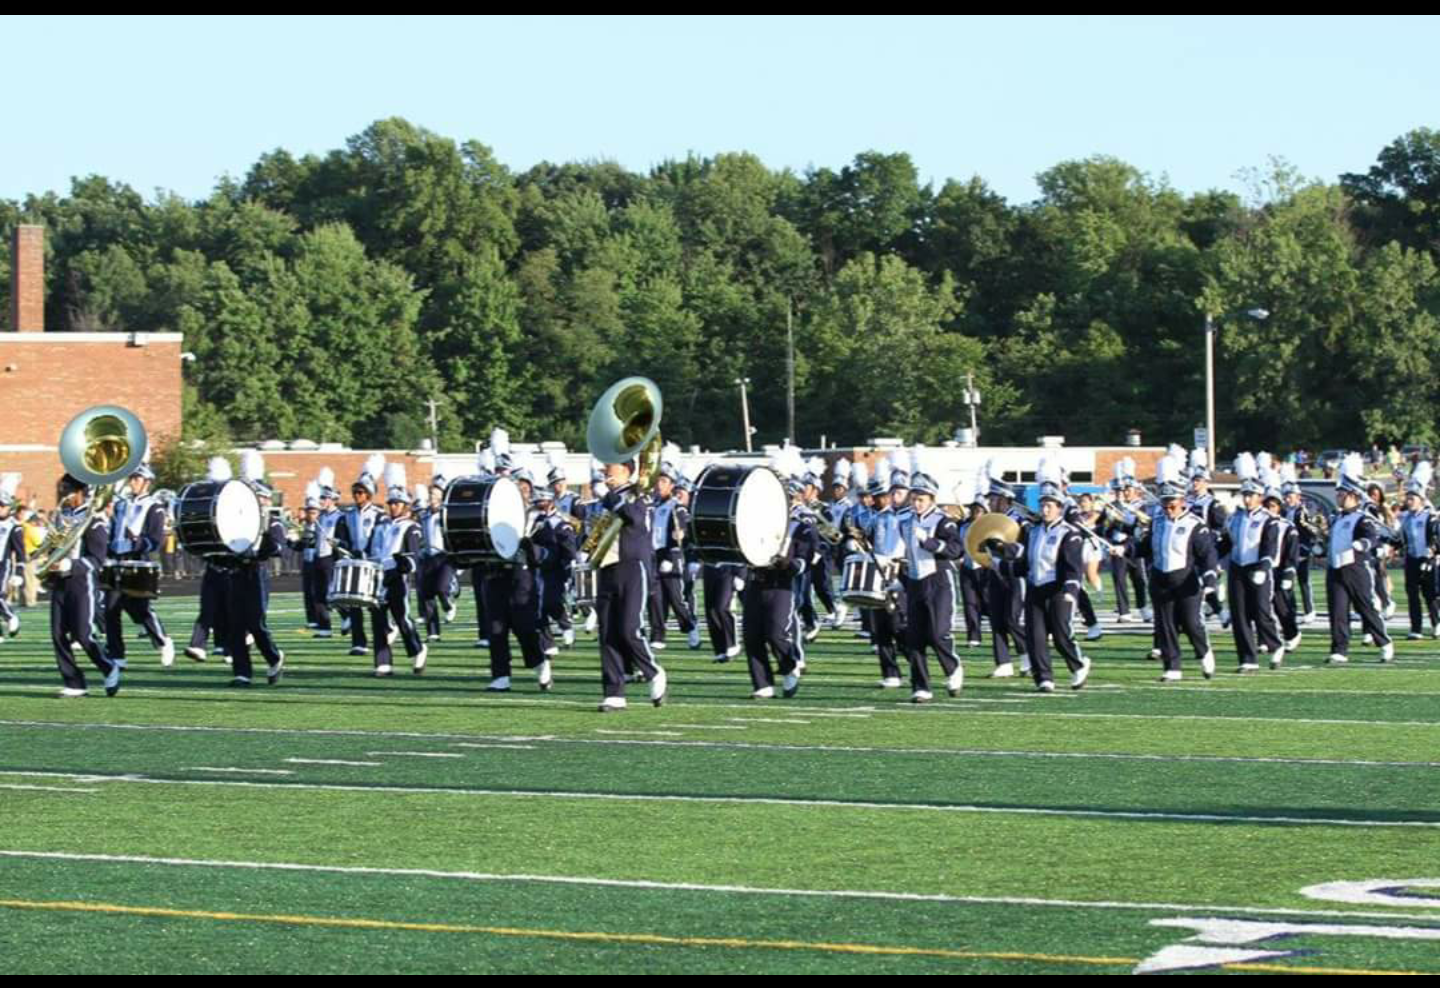 Marching band performing on the field